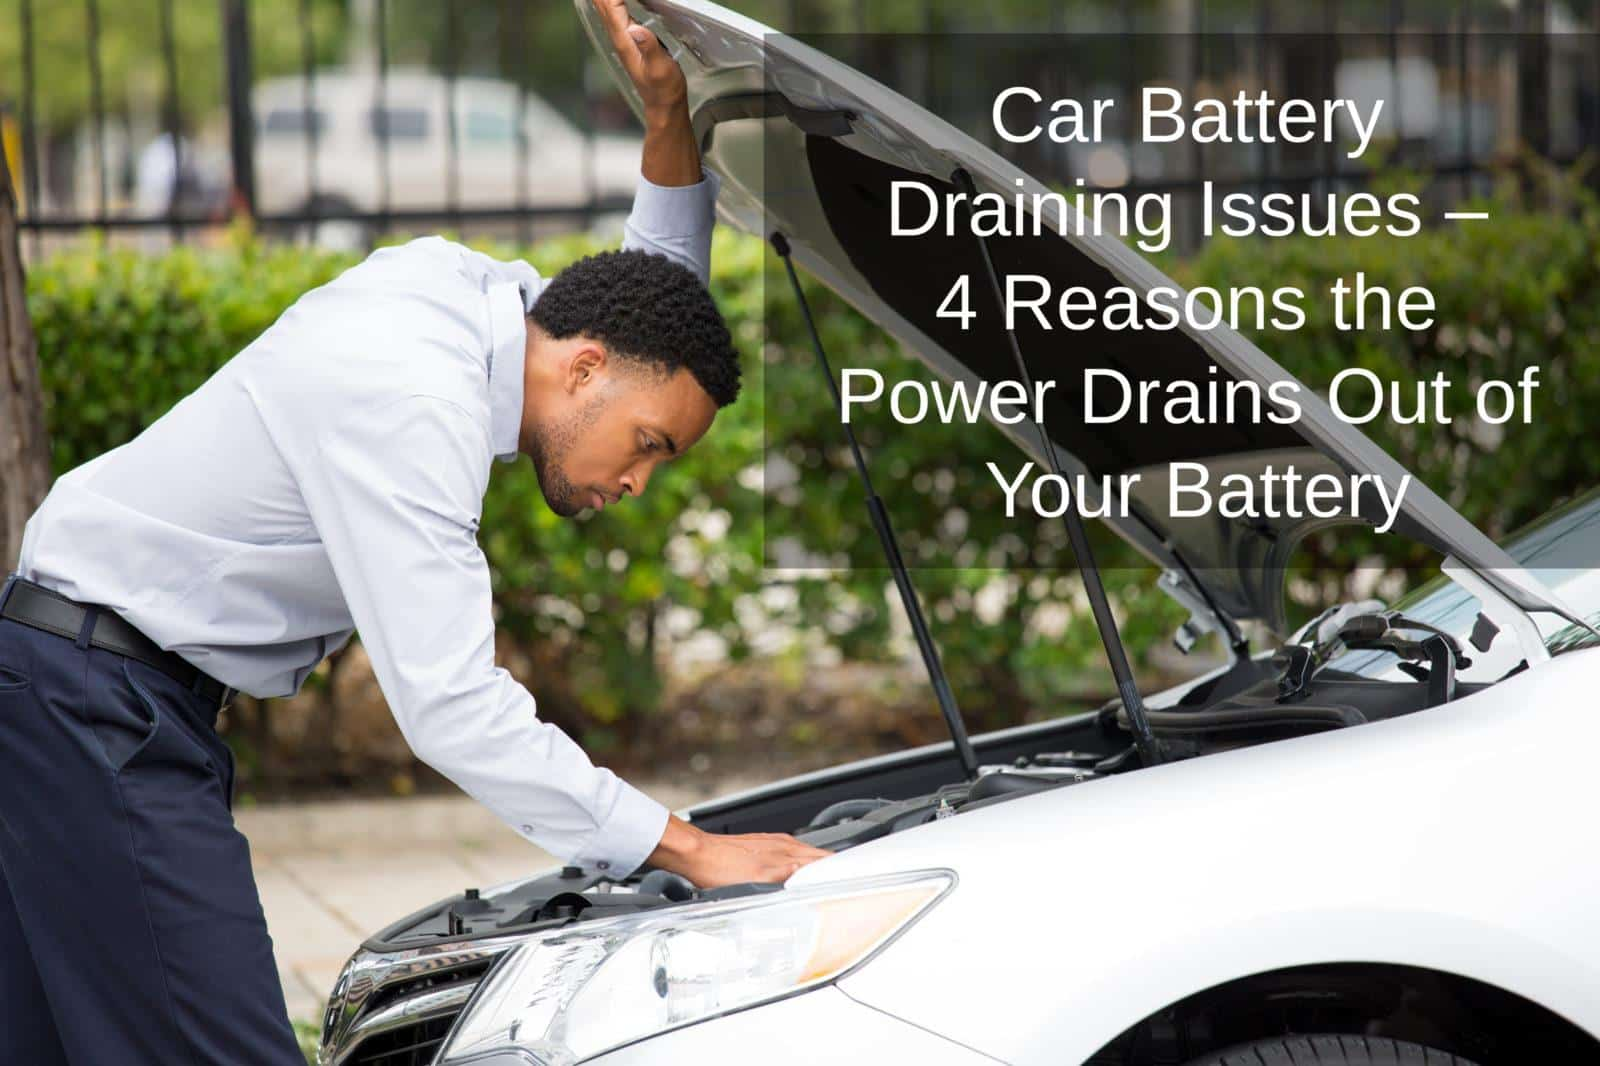 car battery draining issues